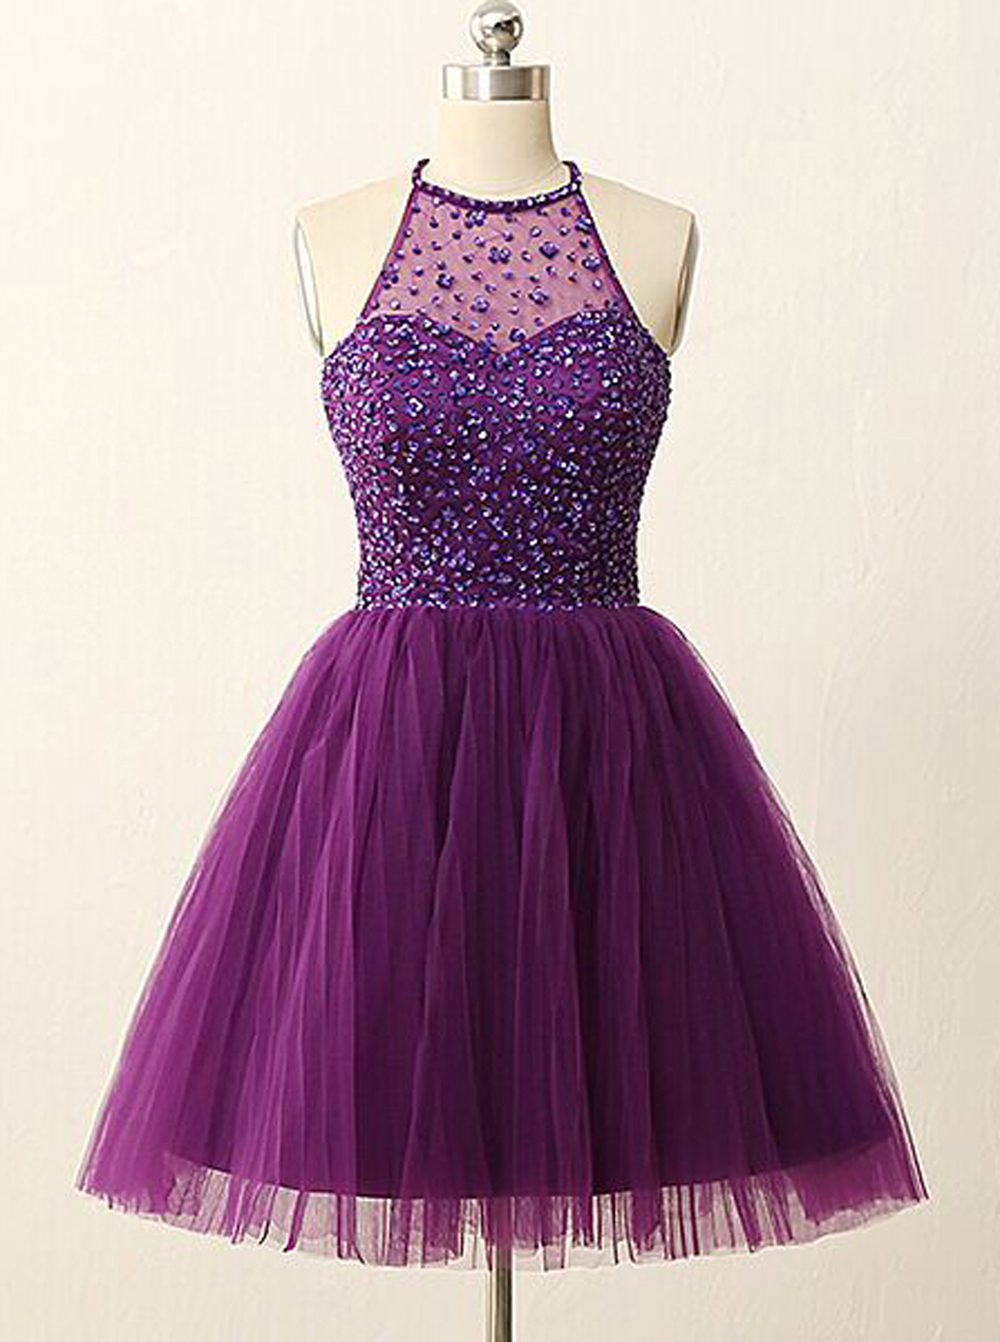 A-line Halter Knee-Length Tulle Backless Purple Prom Homecoming Dress with Rhinestones thumbnail